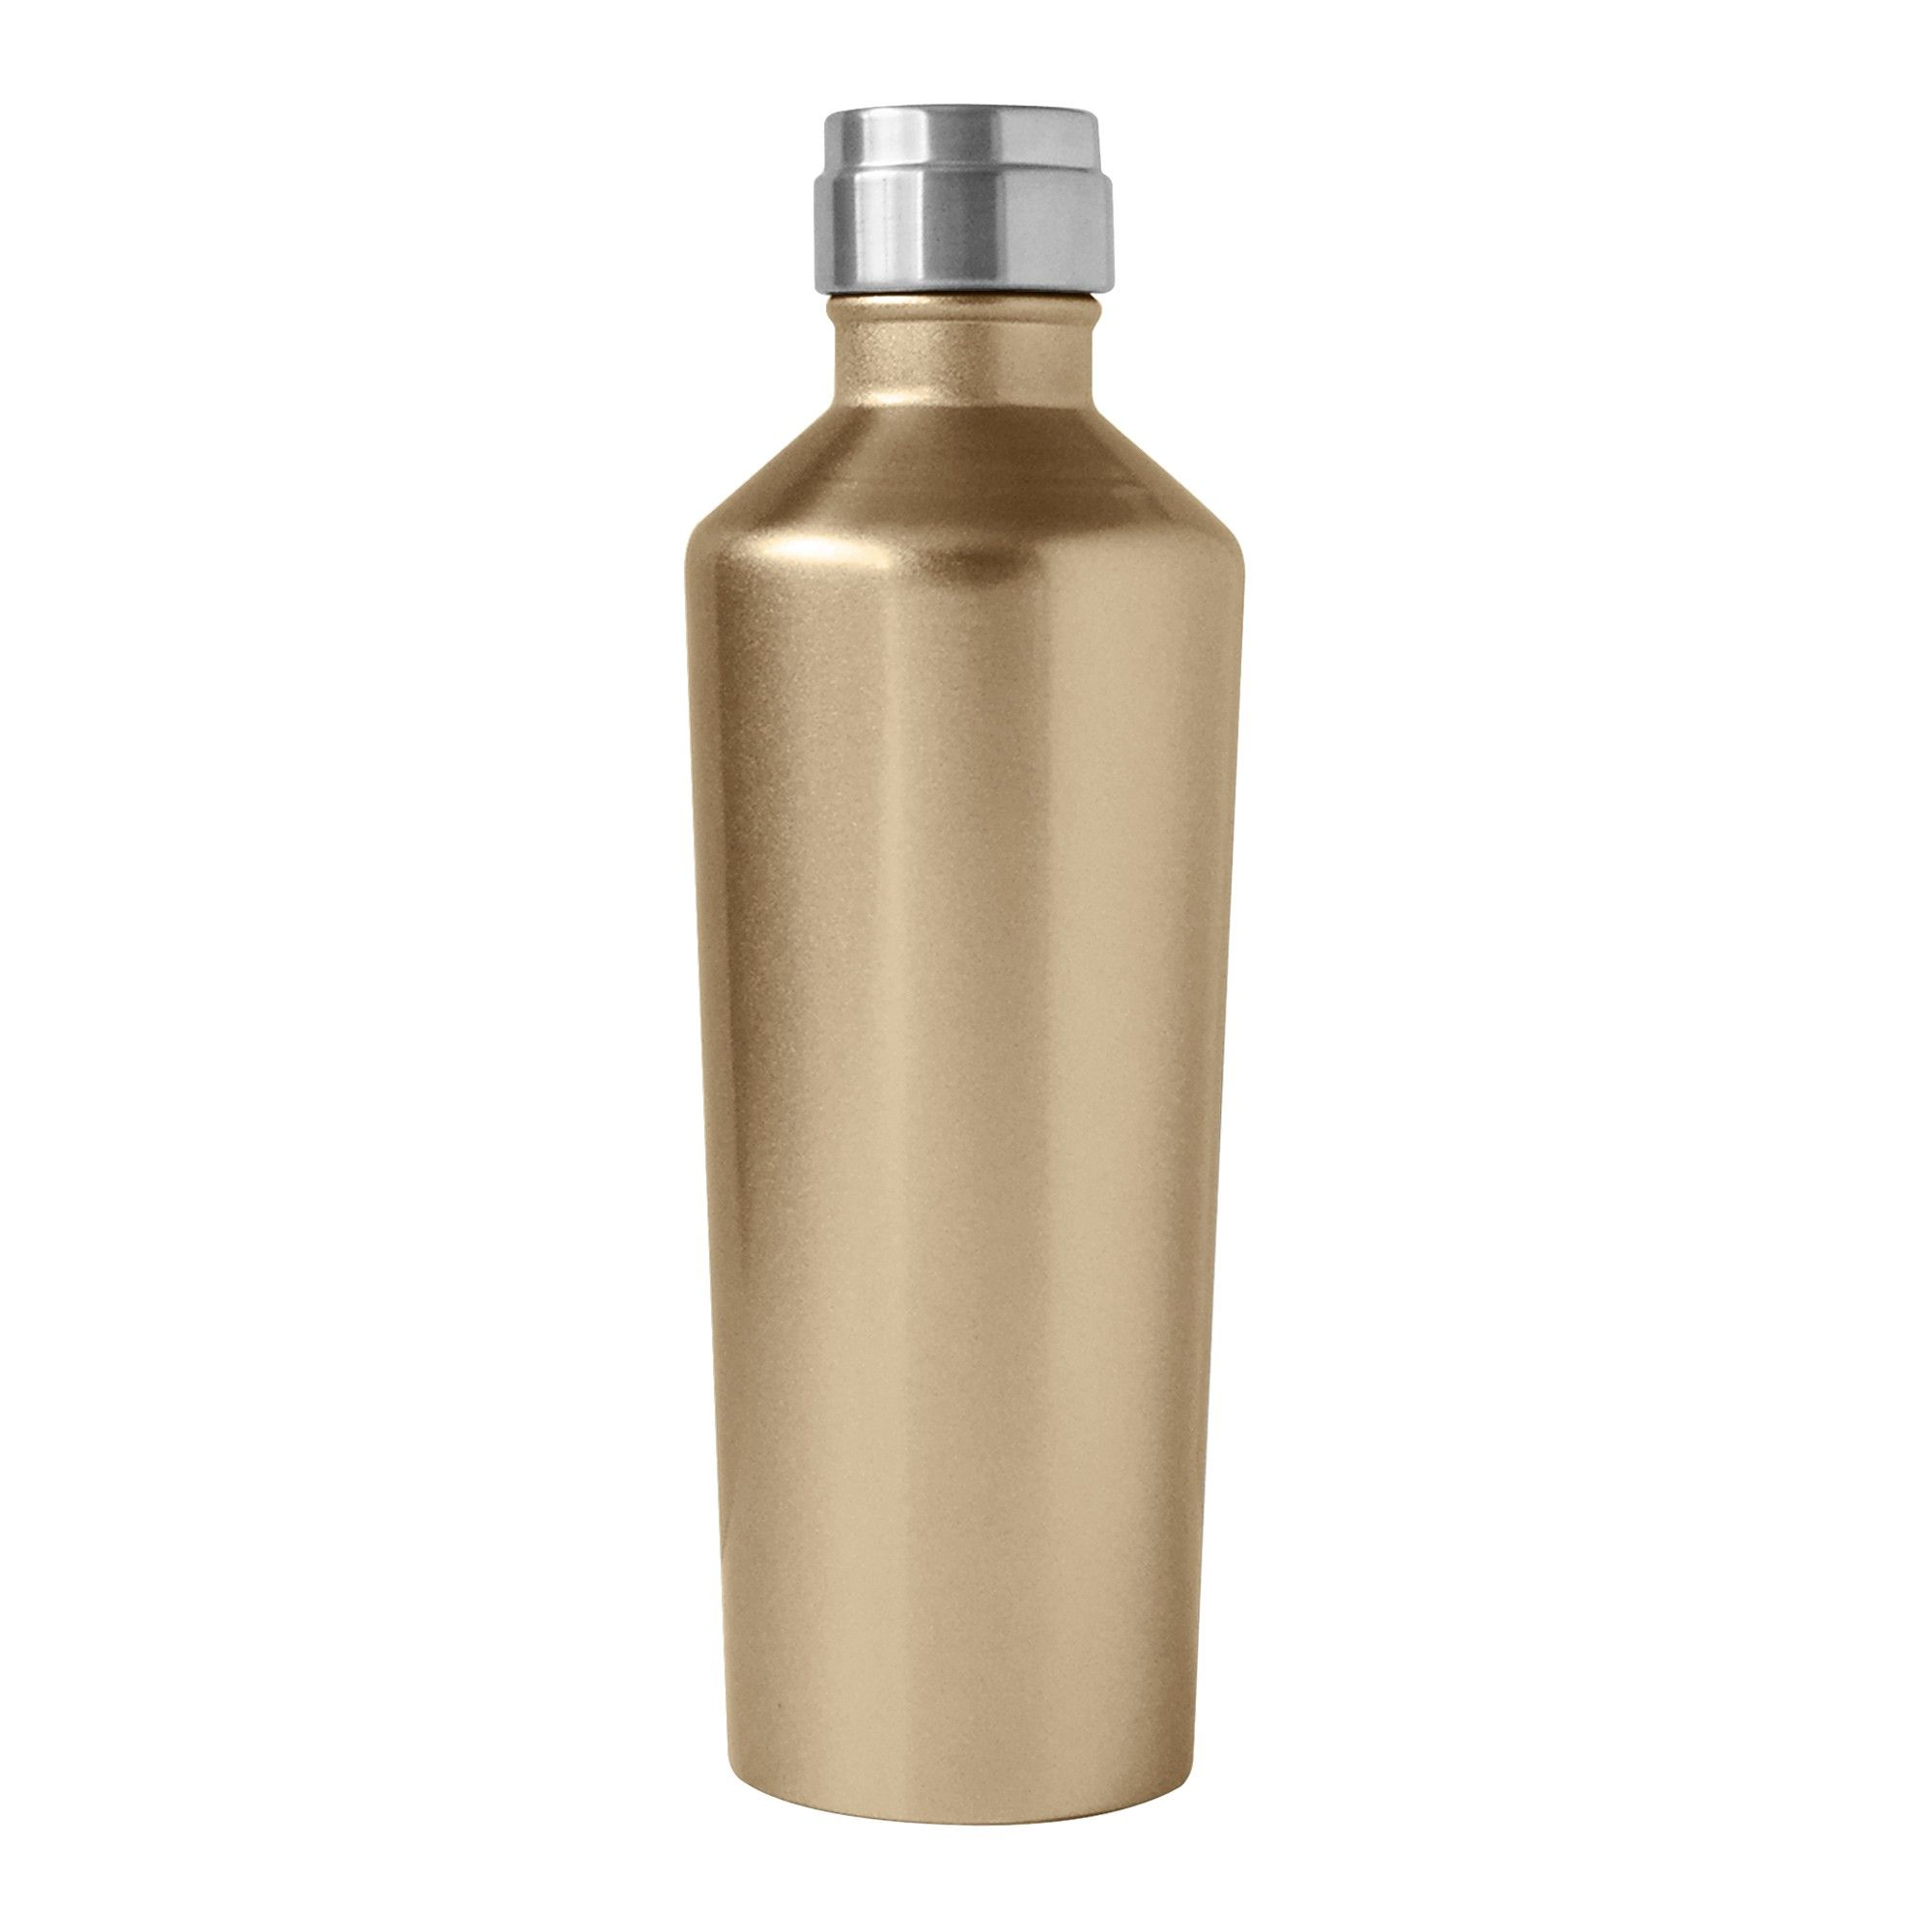 Oggi Deco Lustre 17oz Stainless Steel Insulated Water Bottle Gold